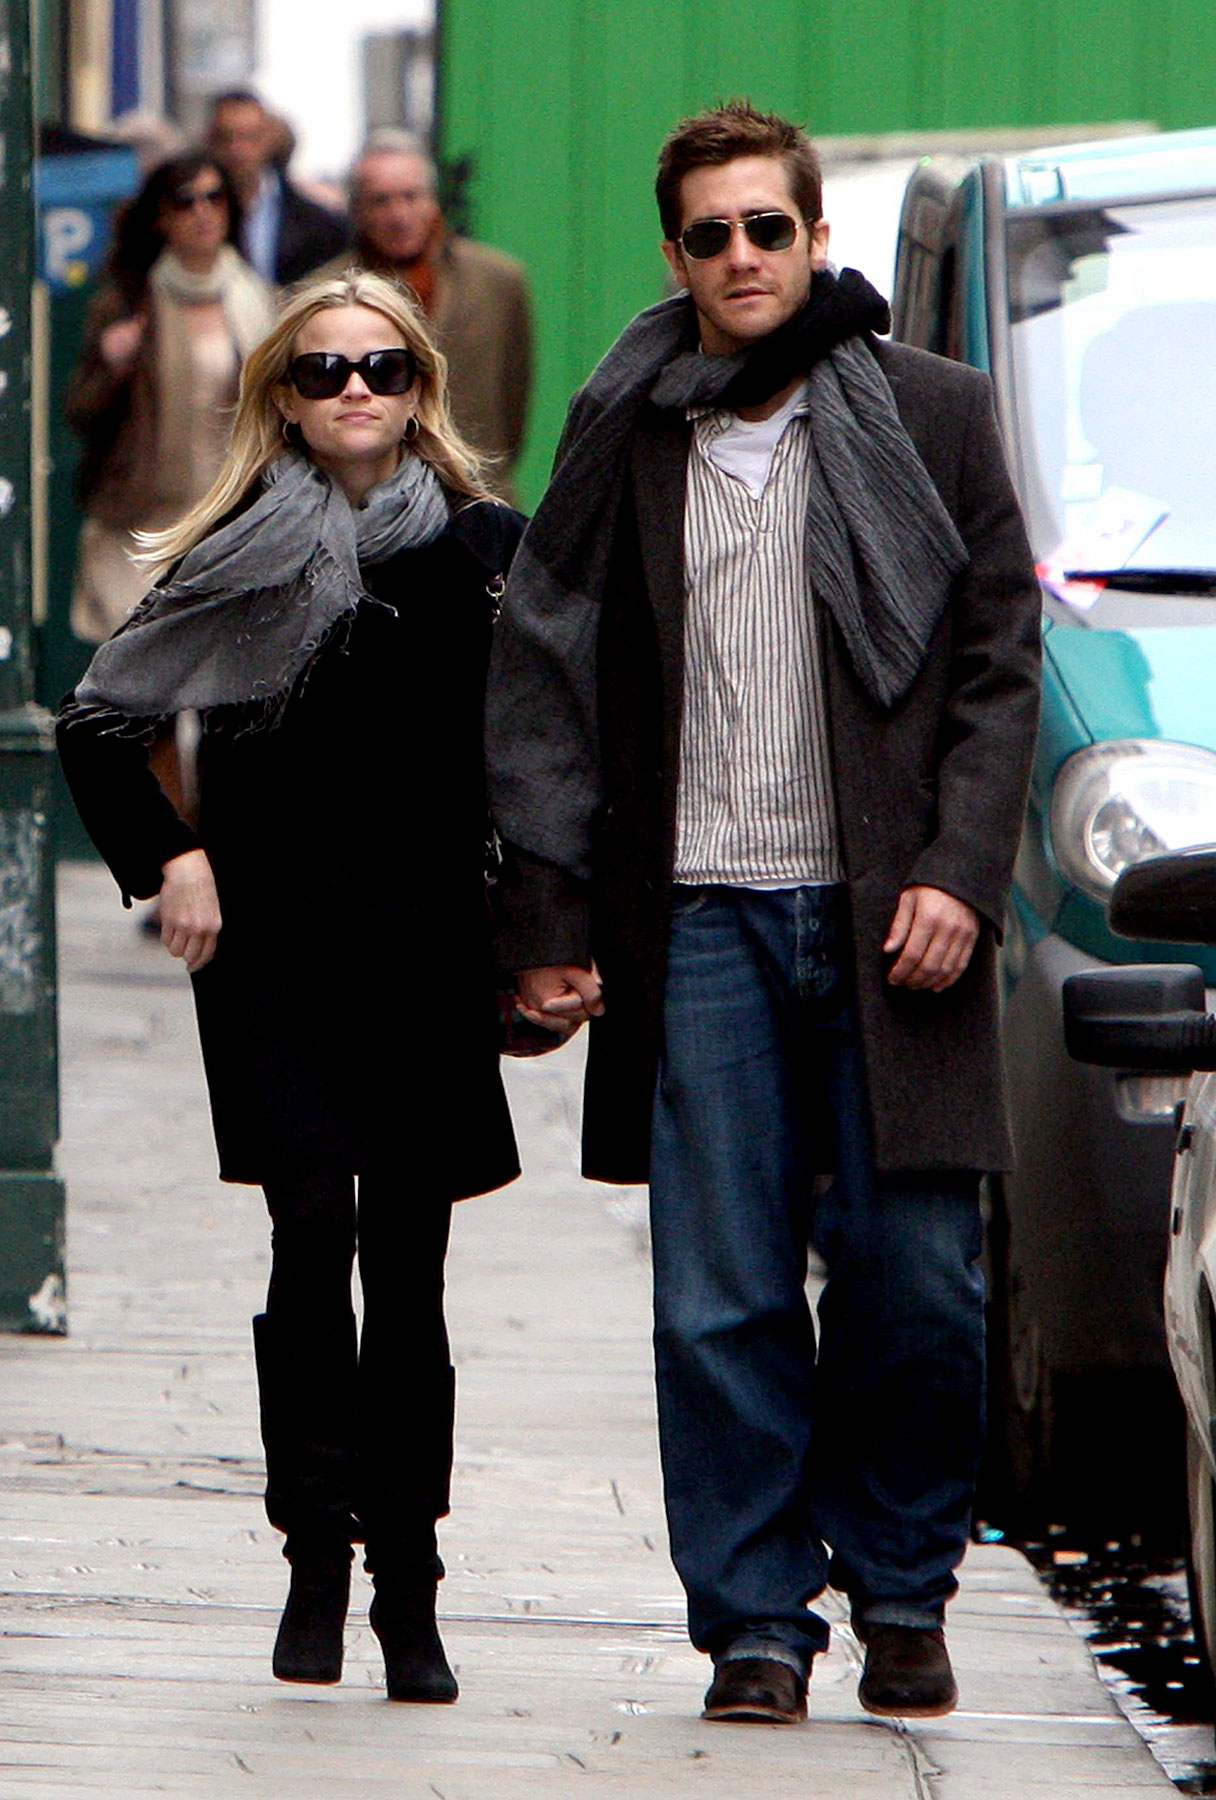 Gyllenhaal and Witherspoon Are Paris Lovers